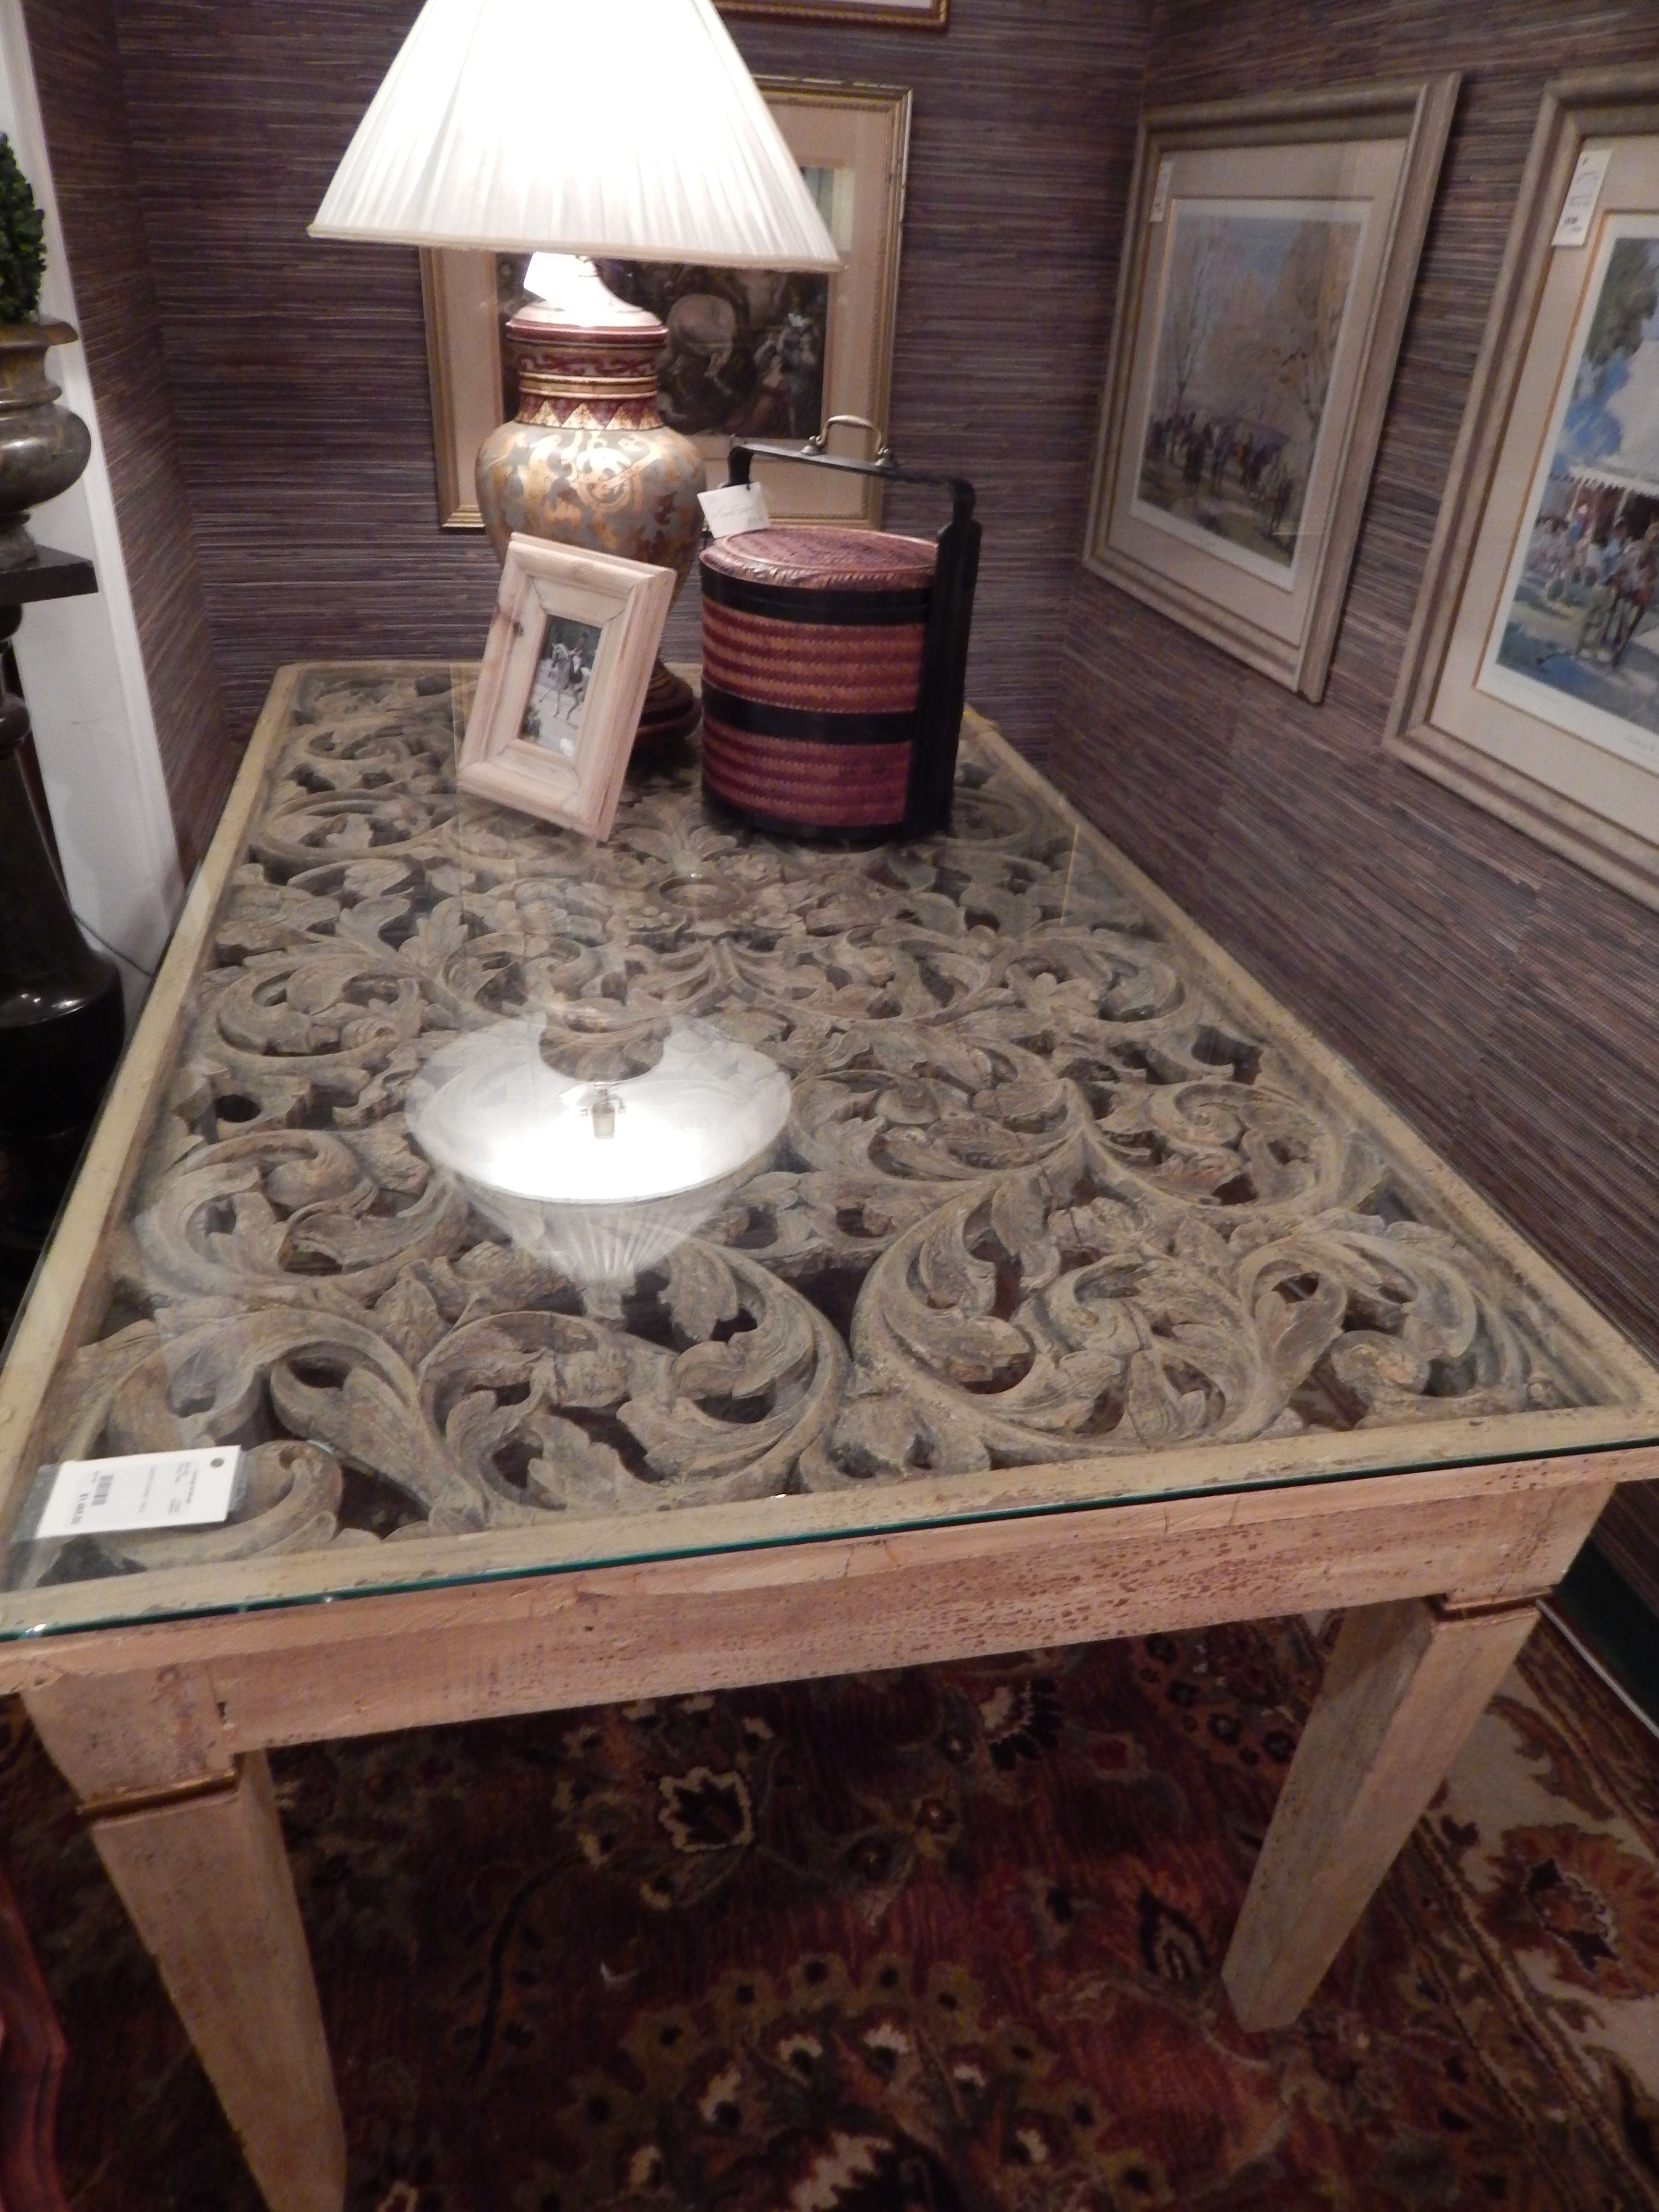 Amazing details on this carved table!!